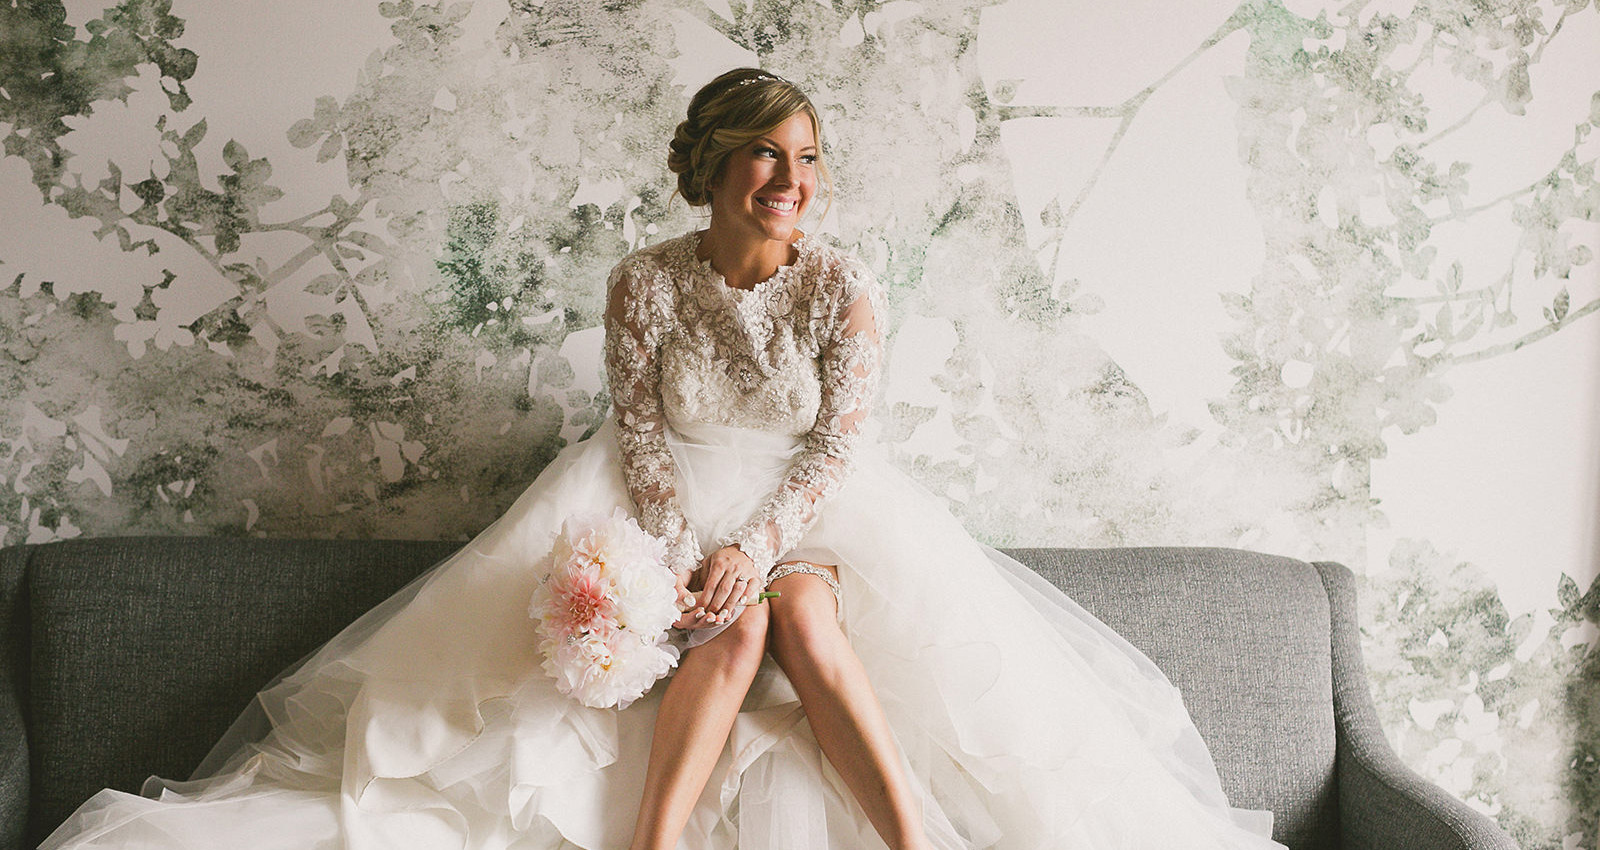 a bride sitting on a couch smiling